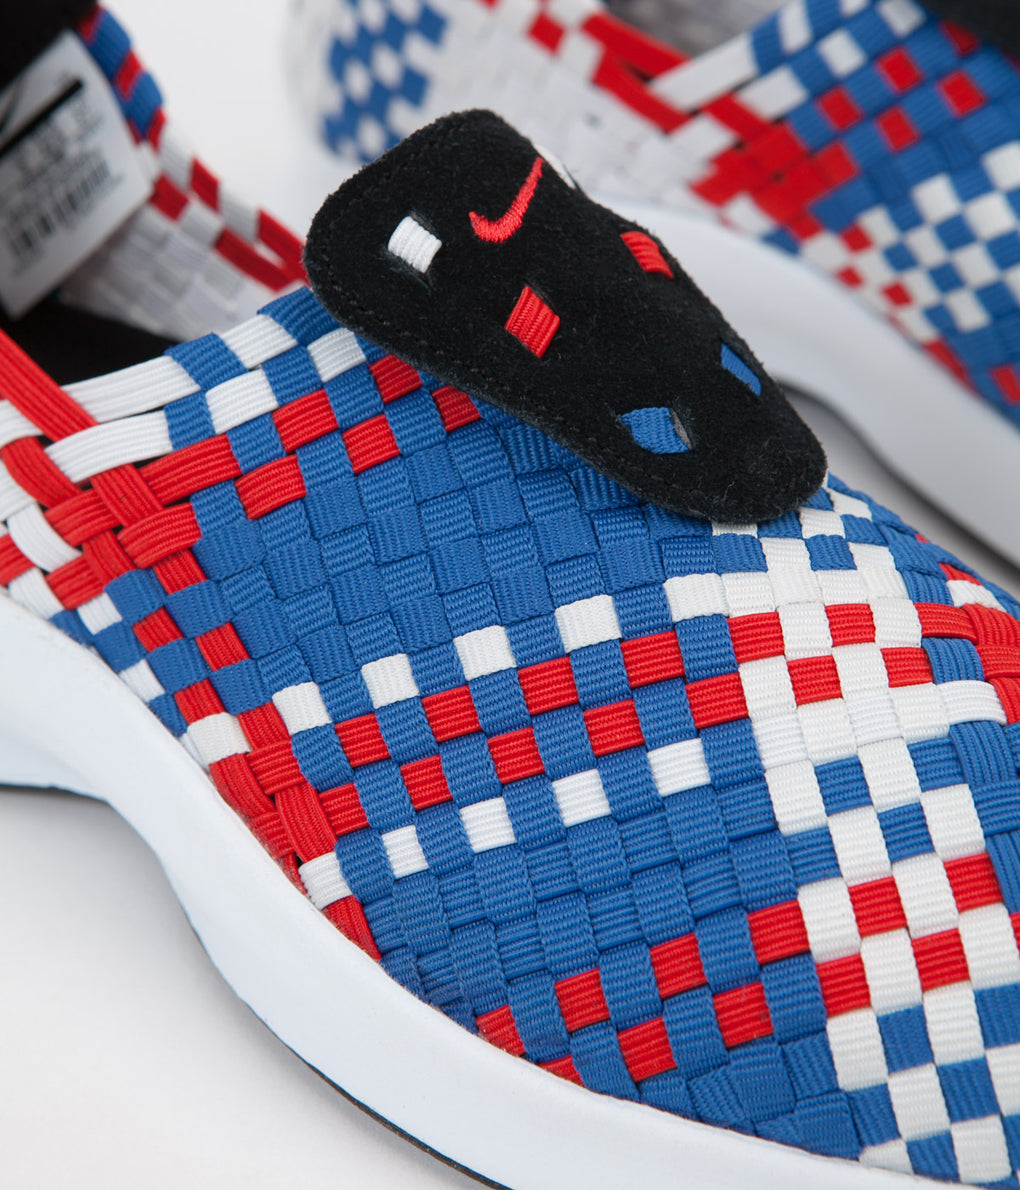 Nike Air Woven Shoes - Black / Rush Red - Blue Jay - Sail